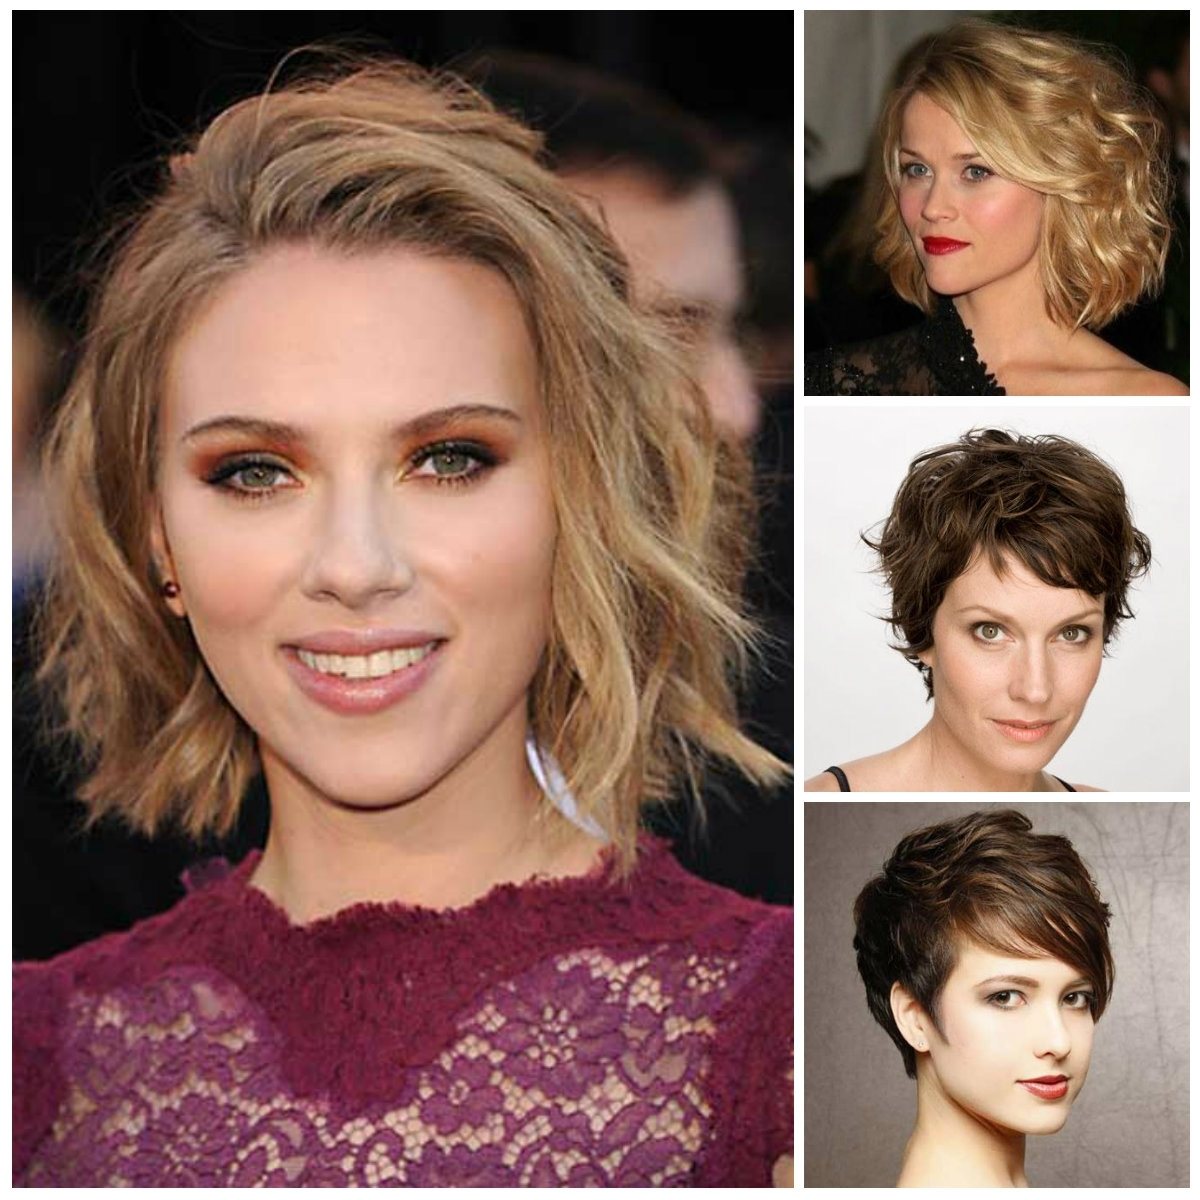 Short Chic Tousled Haircuts For 2016 | 2017 Haircuts, Hairstyles Inside Most Recently Tousled Pixie Hairstyles (View 5 of 15)